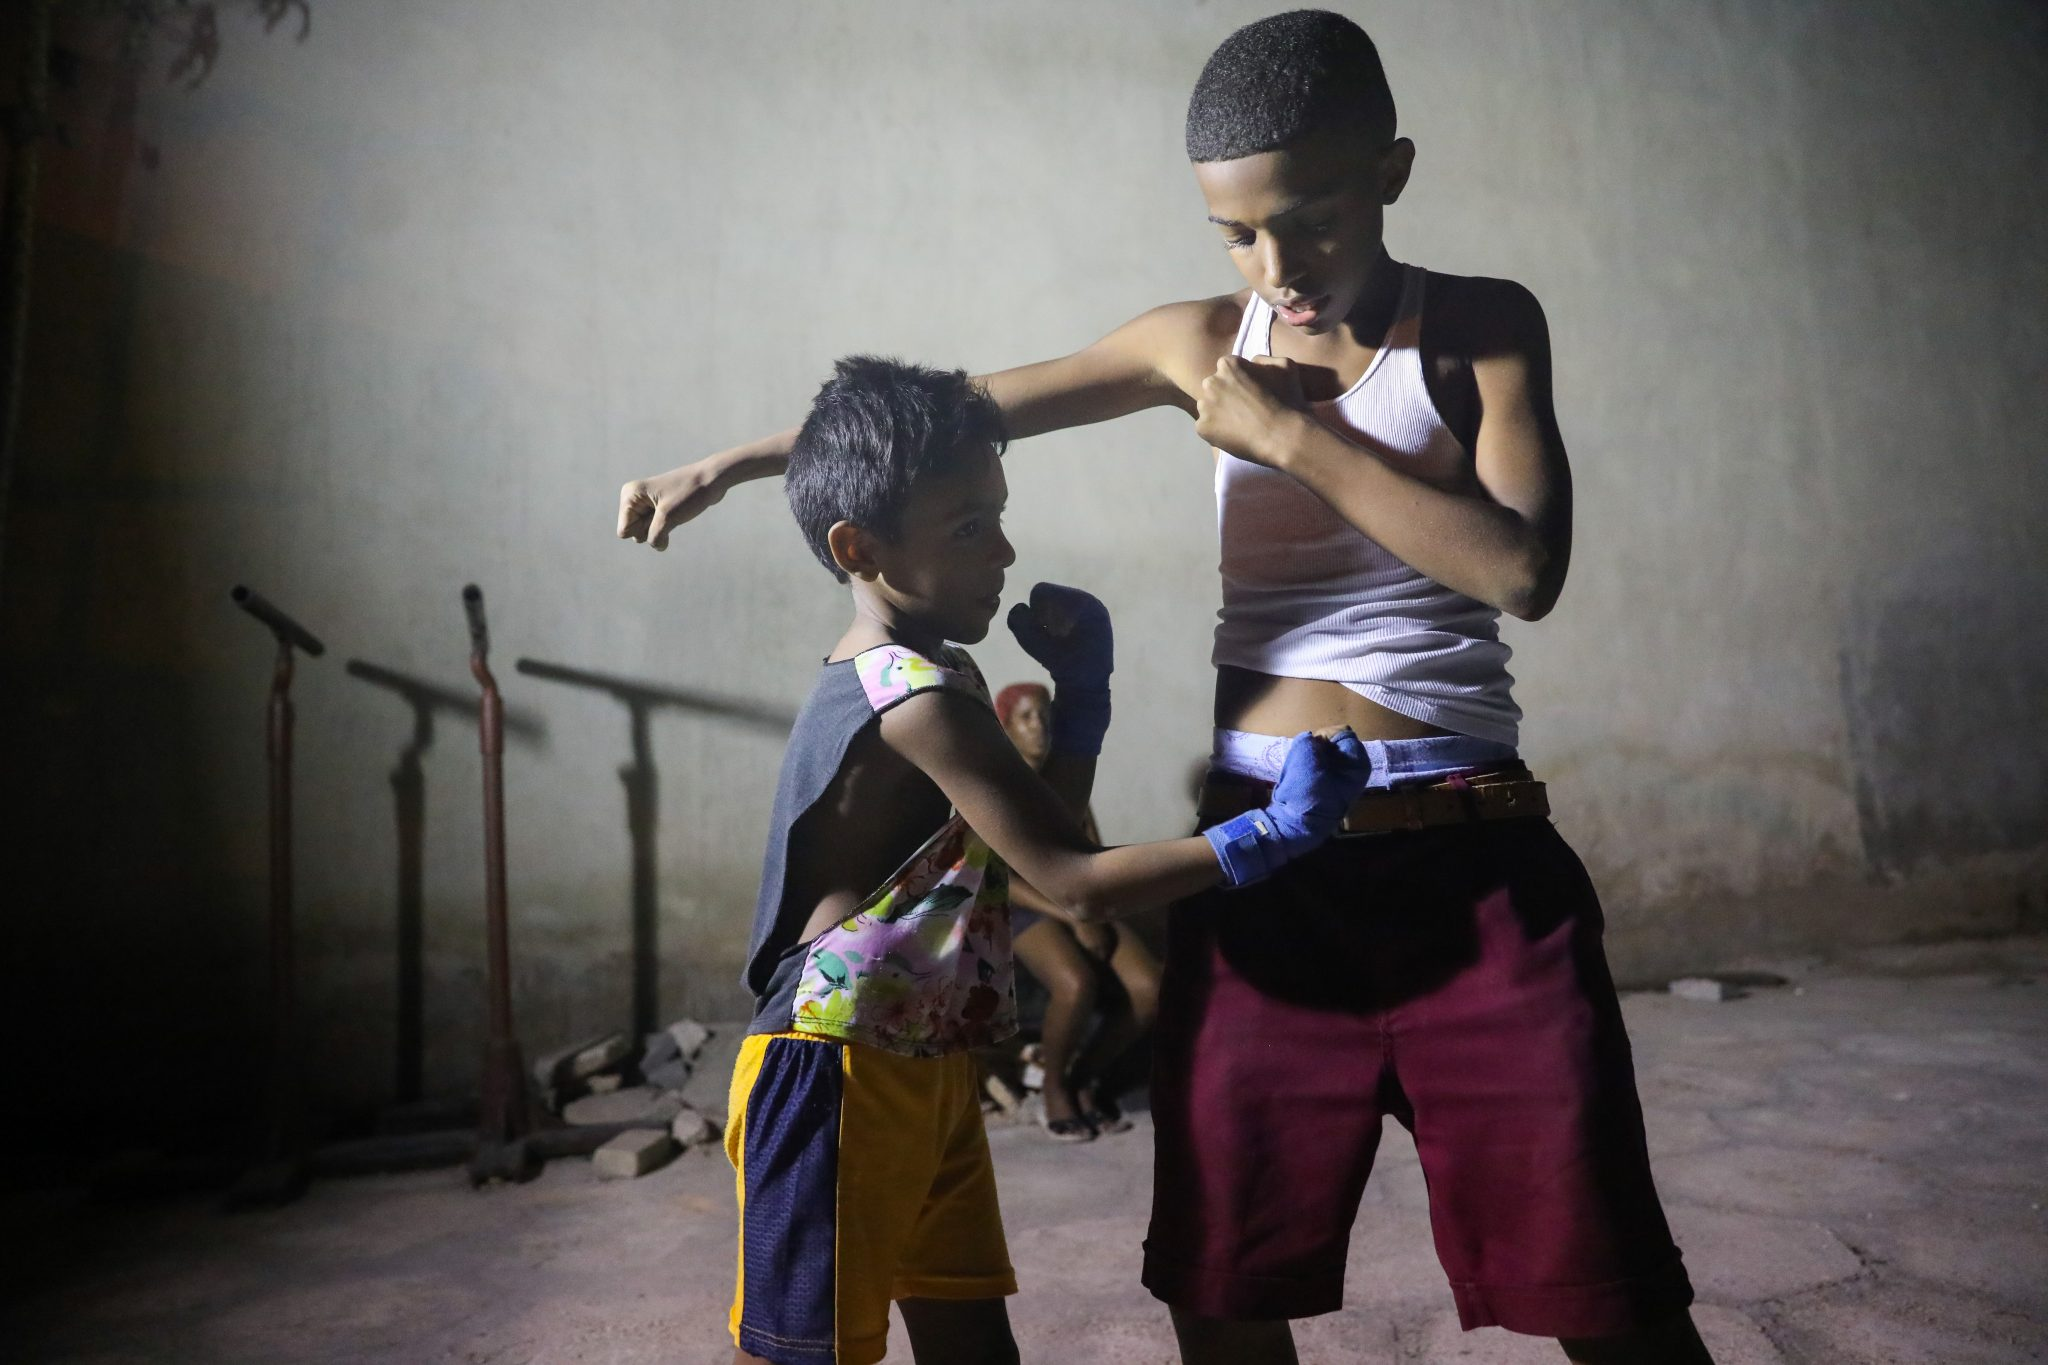 Two boys shadow box in Central Havana's Gimnasio de Boxeo Centro Habana. Luke Galati Photography